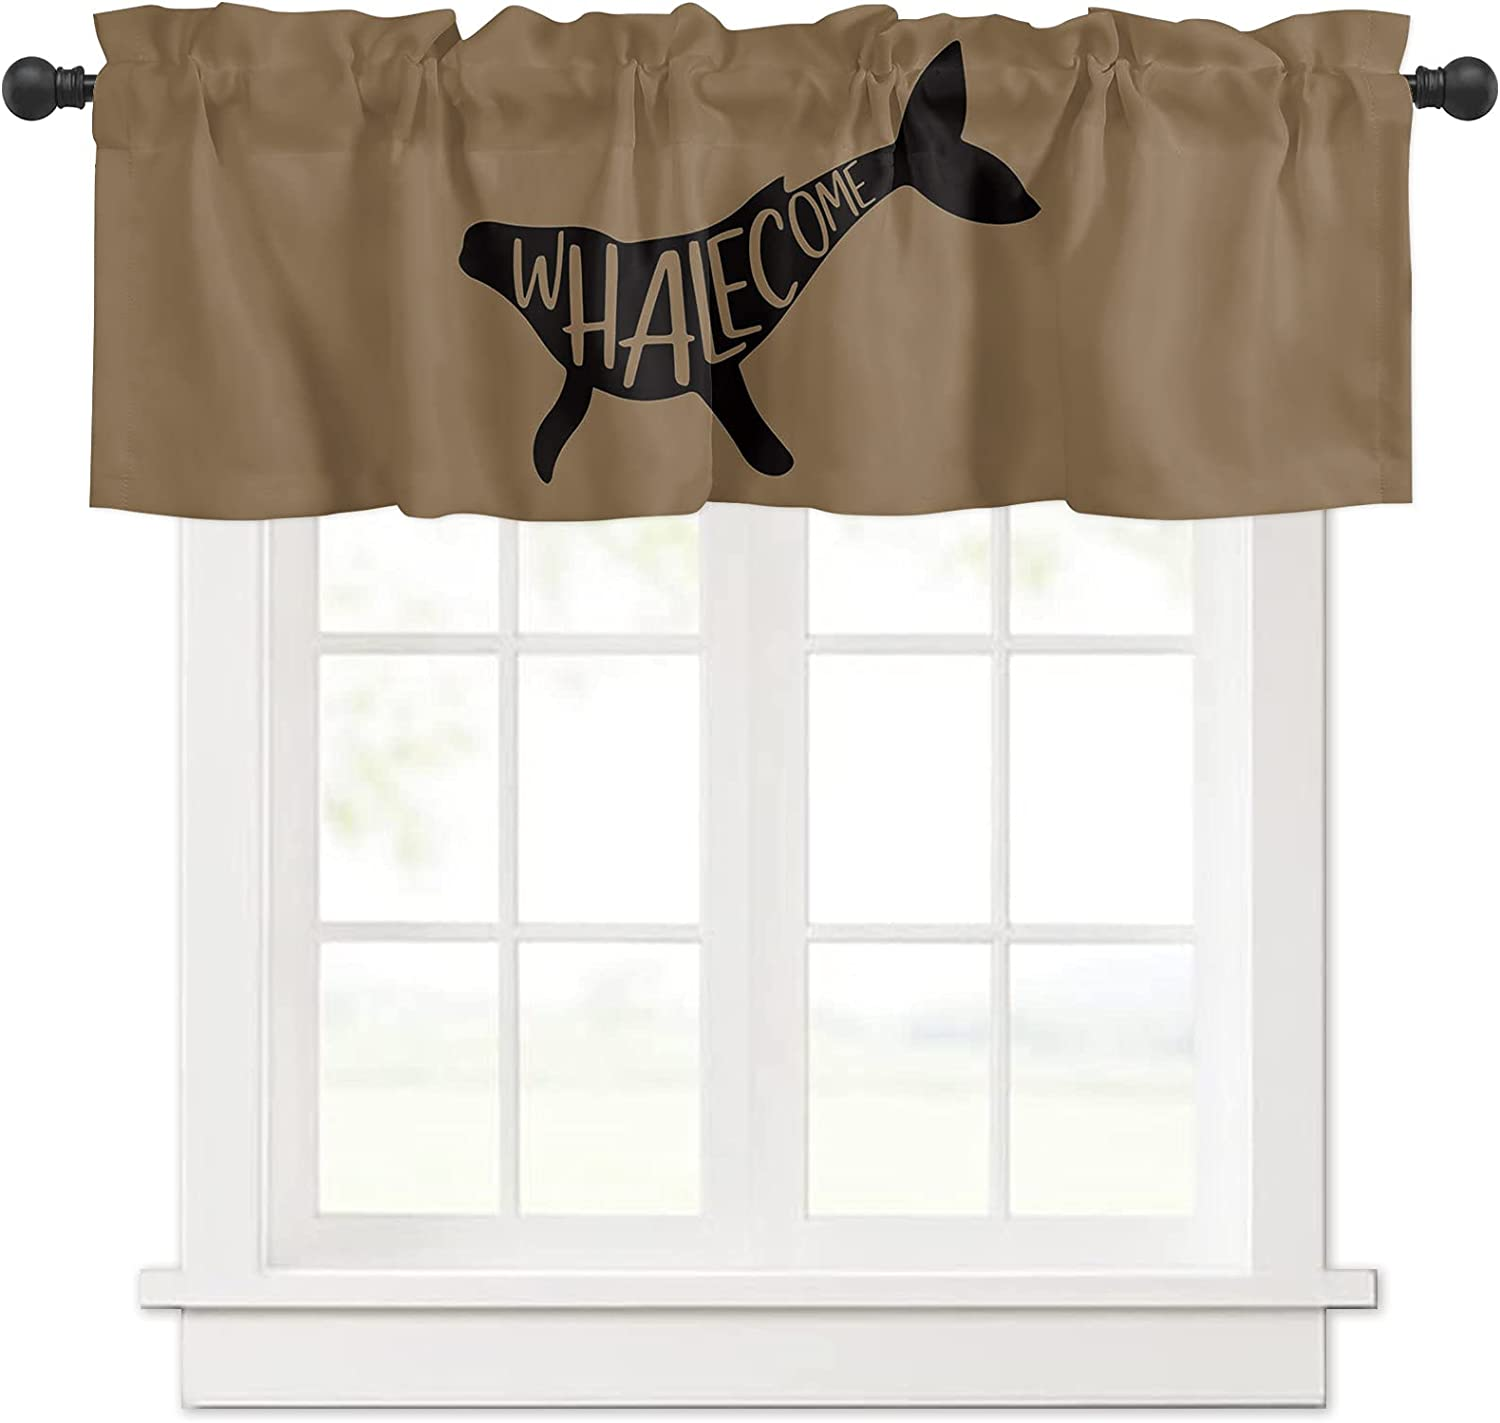 Black Whalecome Cartoon Selling rankings Brown Backdrop Valances for New product! New type Wind Curtain